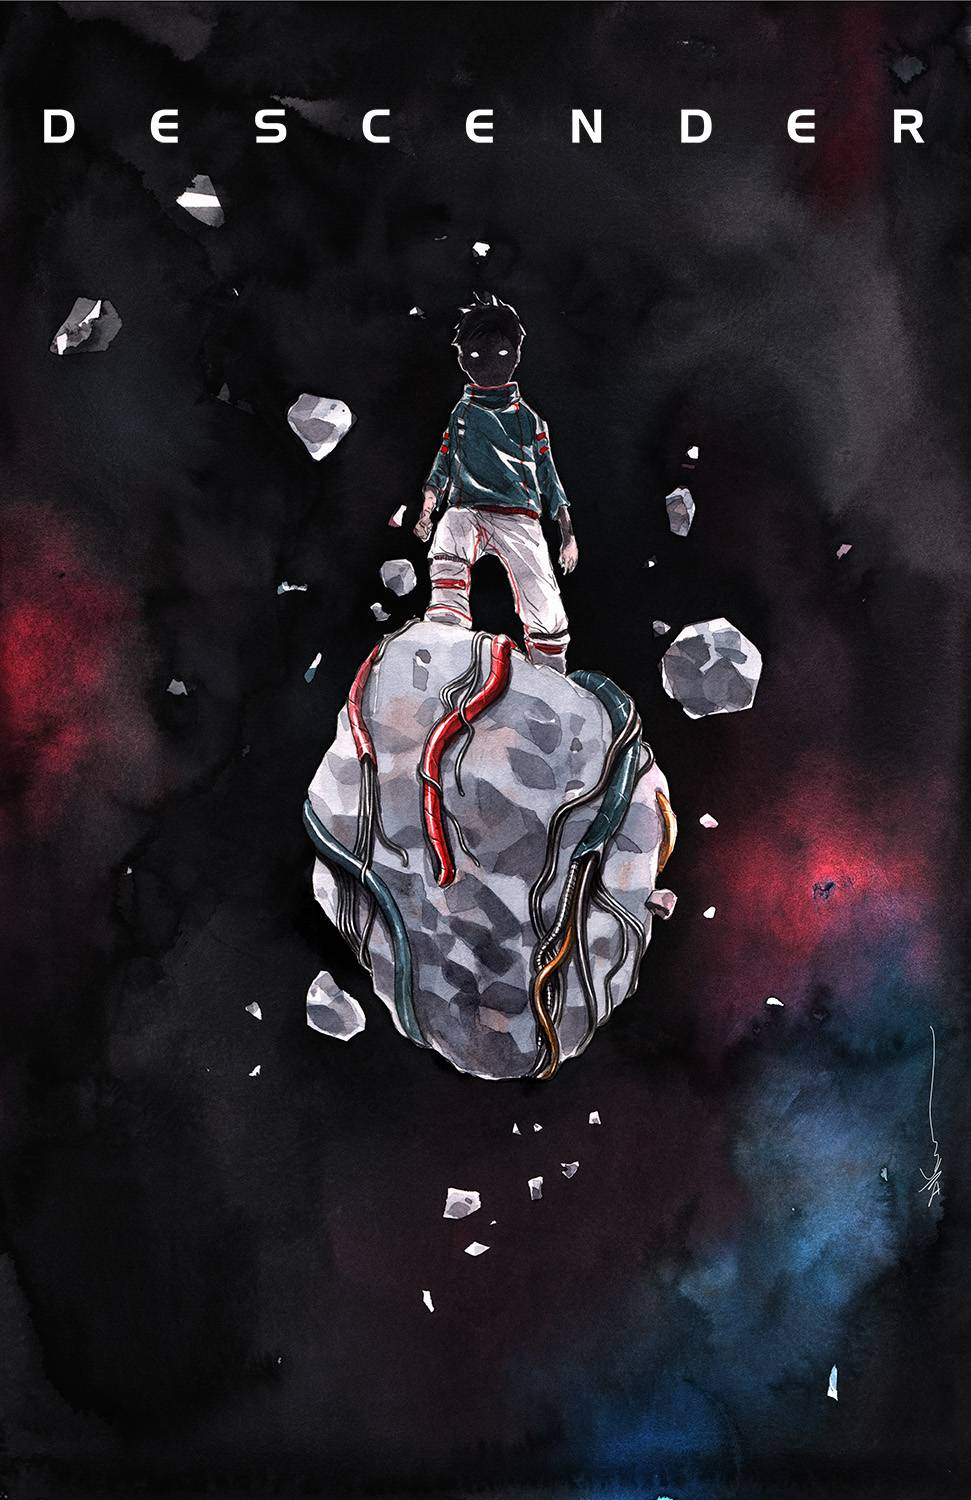 DESCENDER TP VOL 04 ORBITAL MECHANICS (APR170785) (MR)